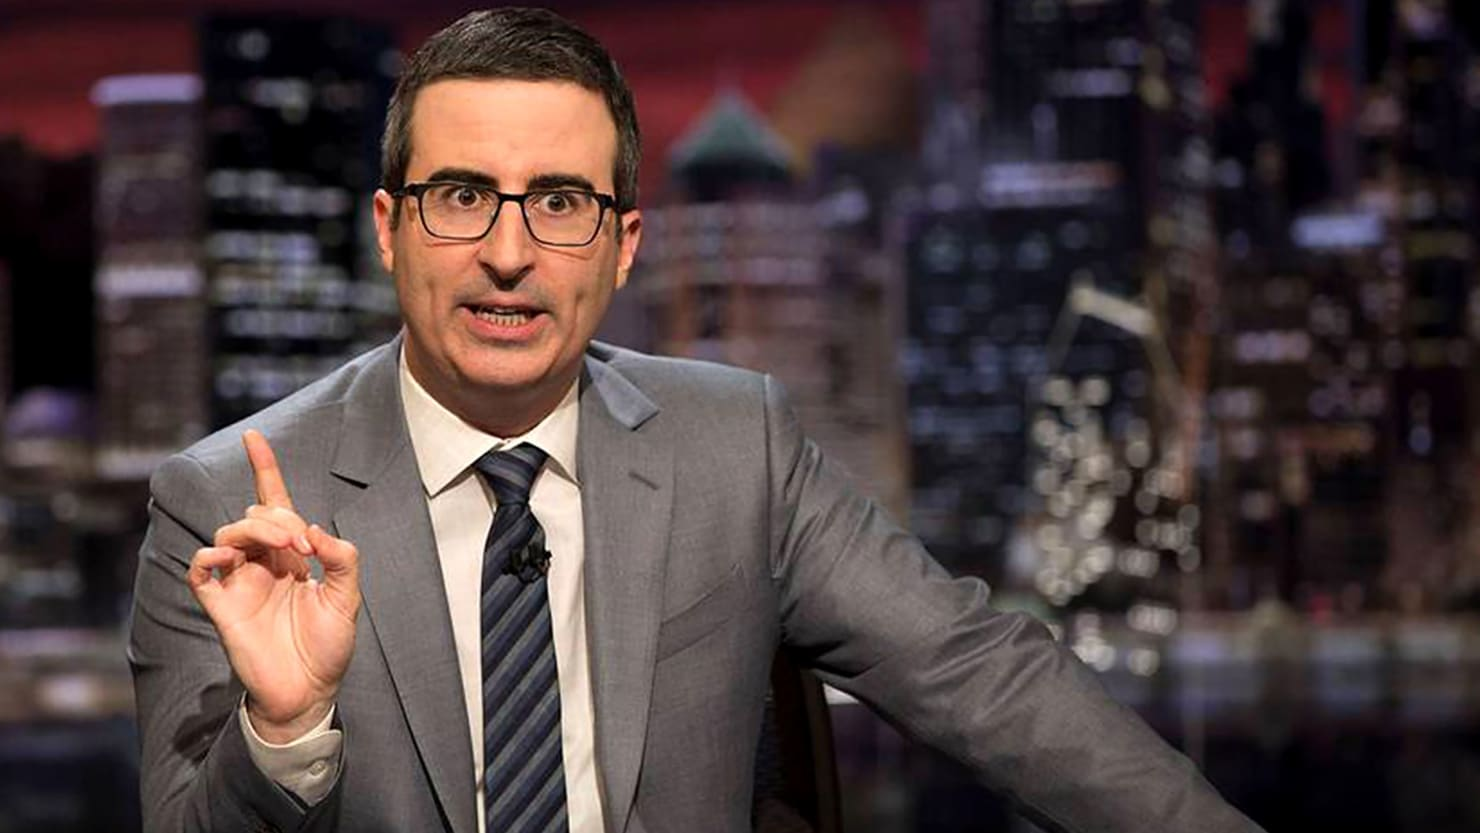 John Oliver Goes Off on Sinclair, Calls News Anchors 'Members of a Brainwashed Cult'